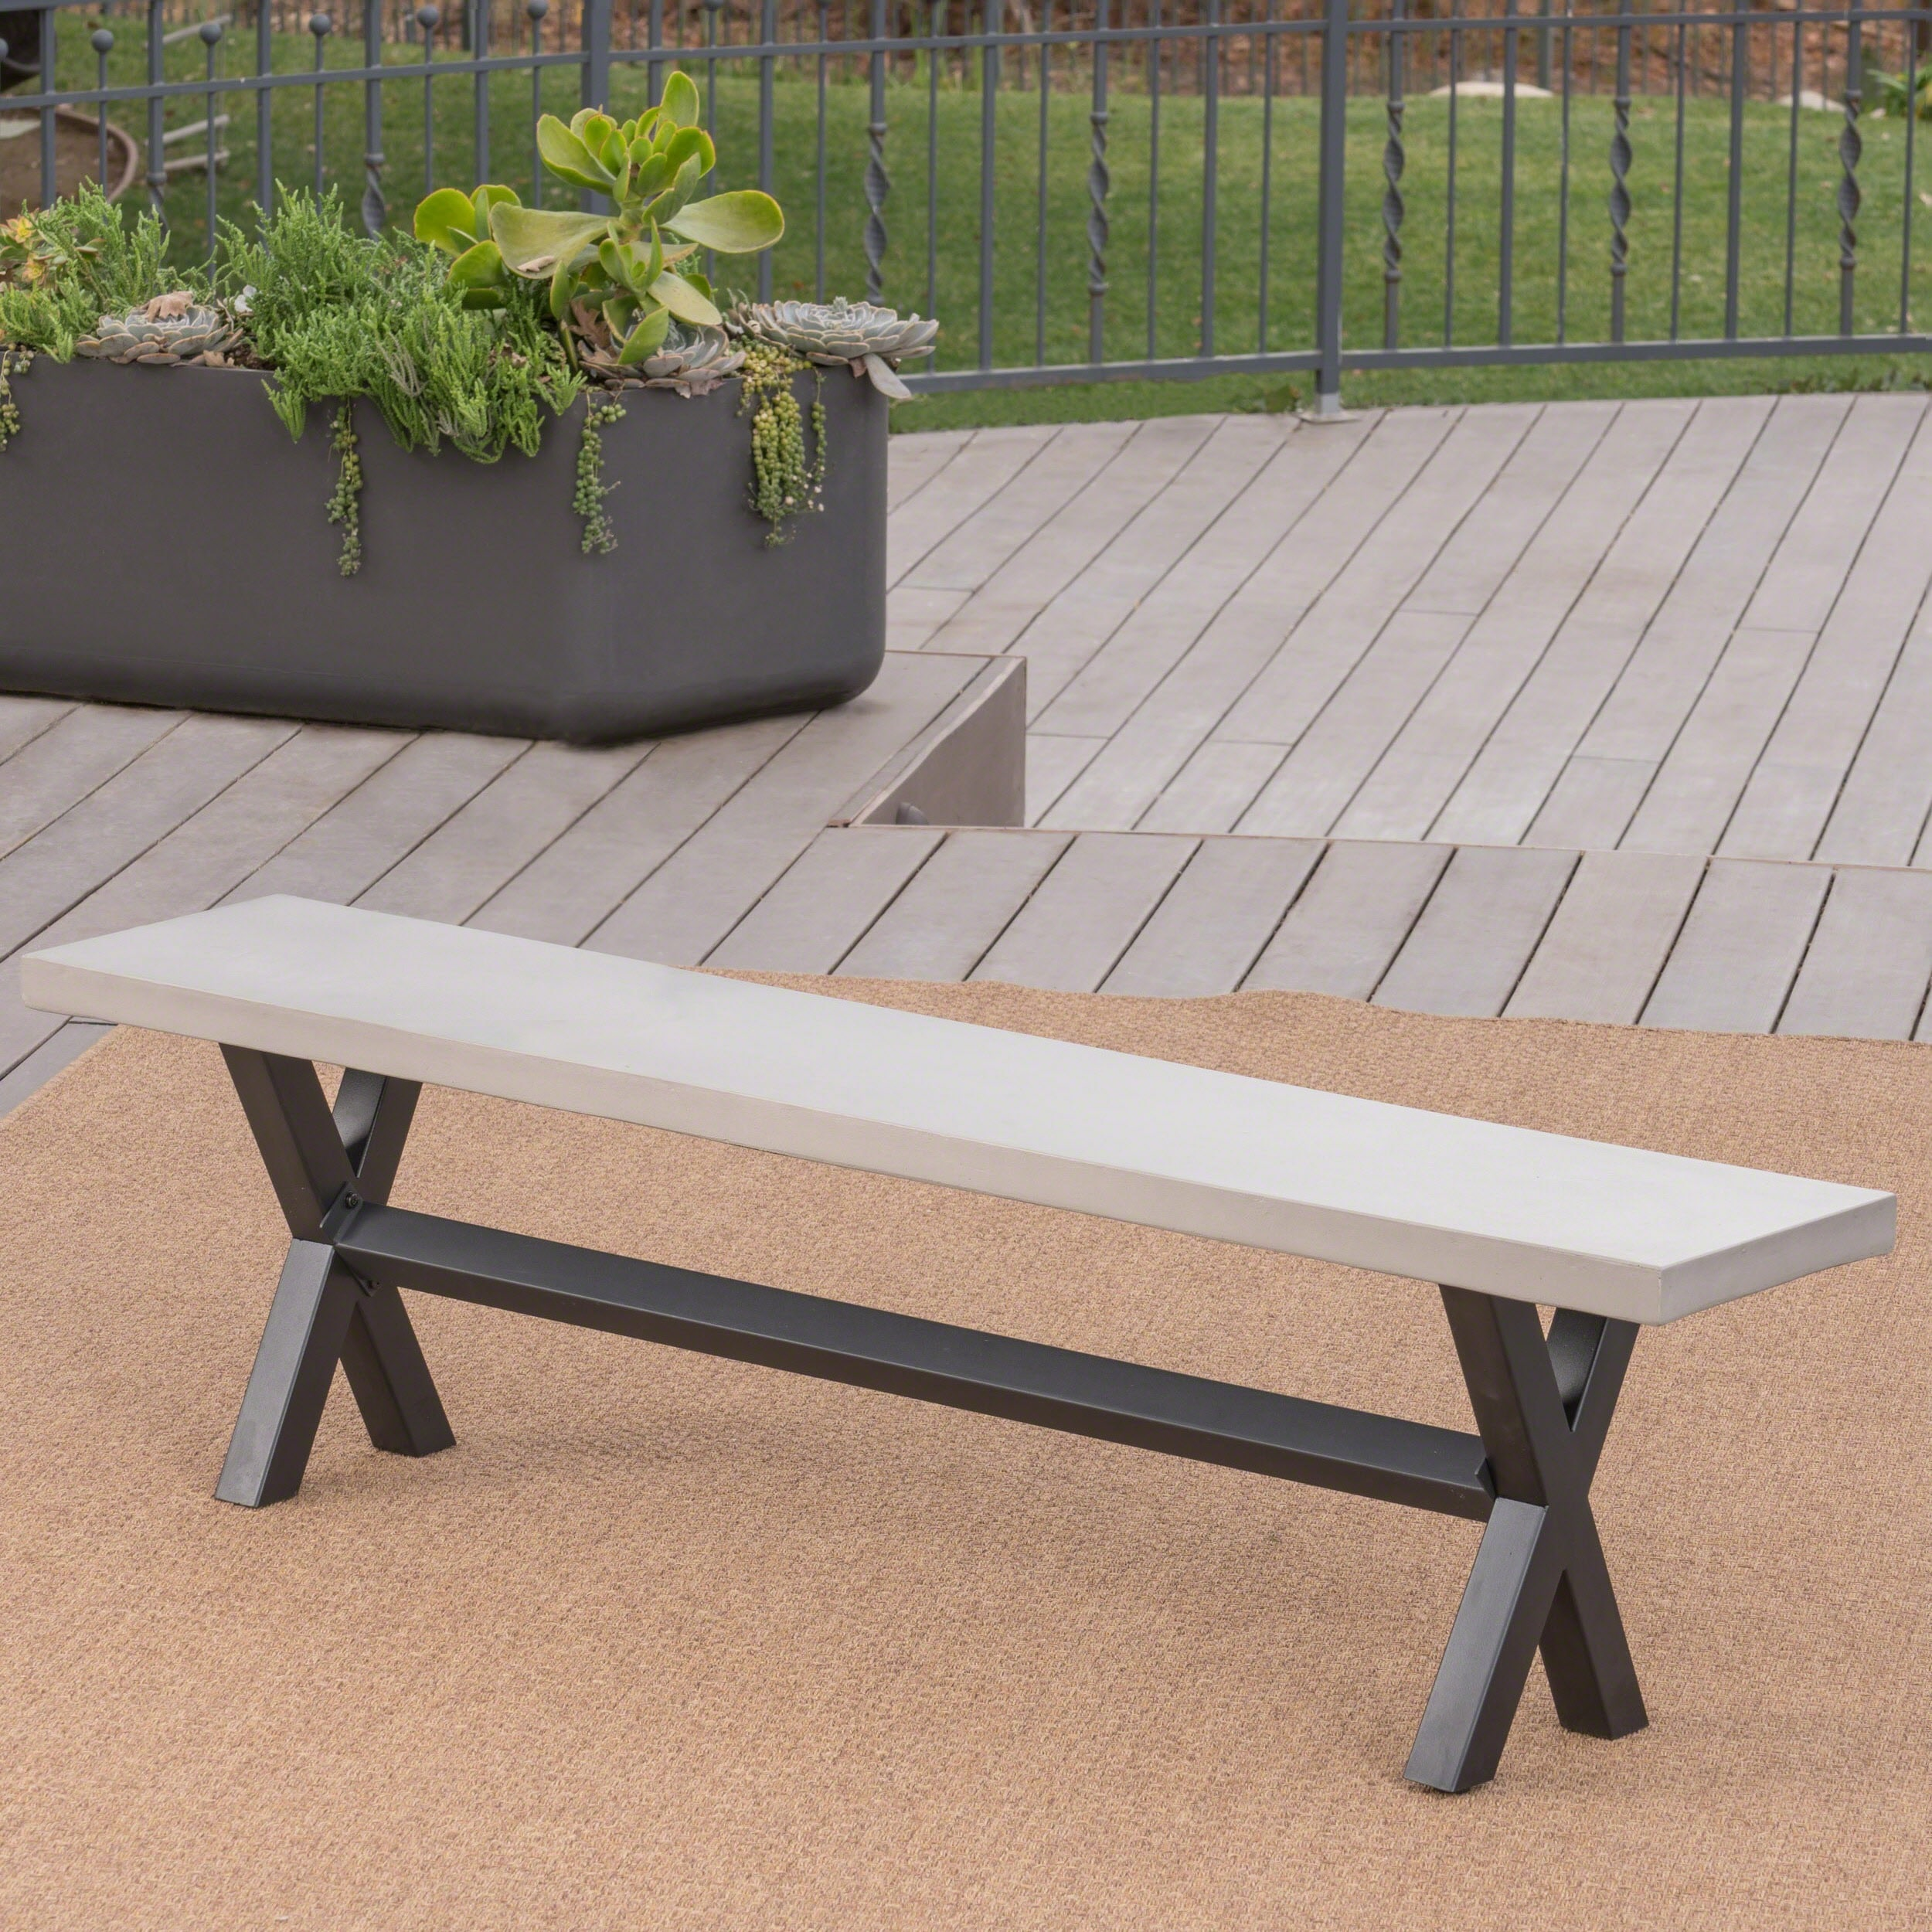 Goleta Outdoor Concrete Dining Bench By Christopher Knight Home On Free Shipping Today 19454911